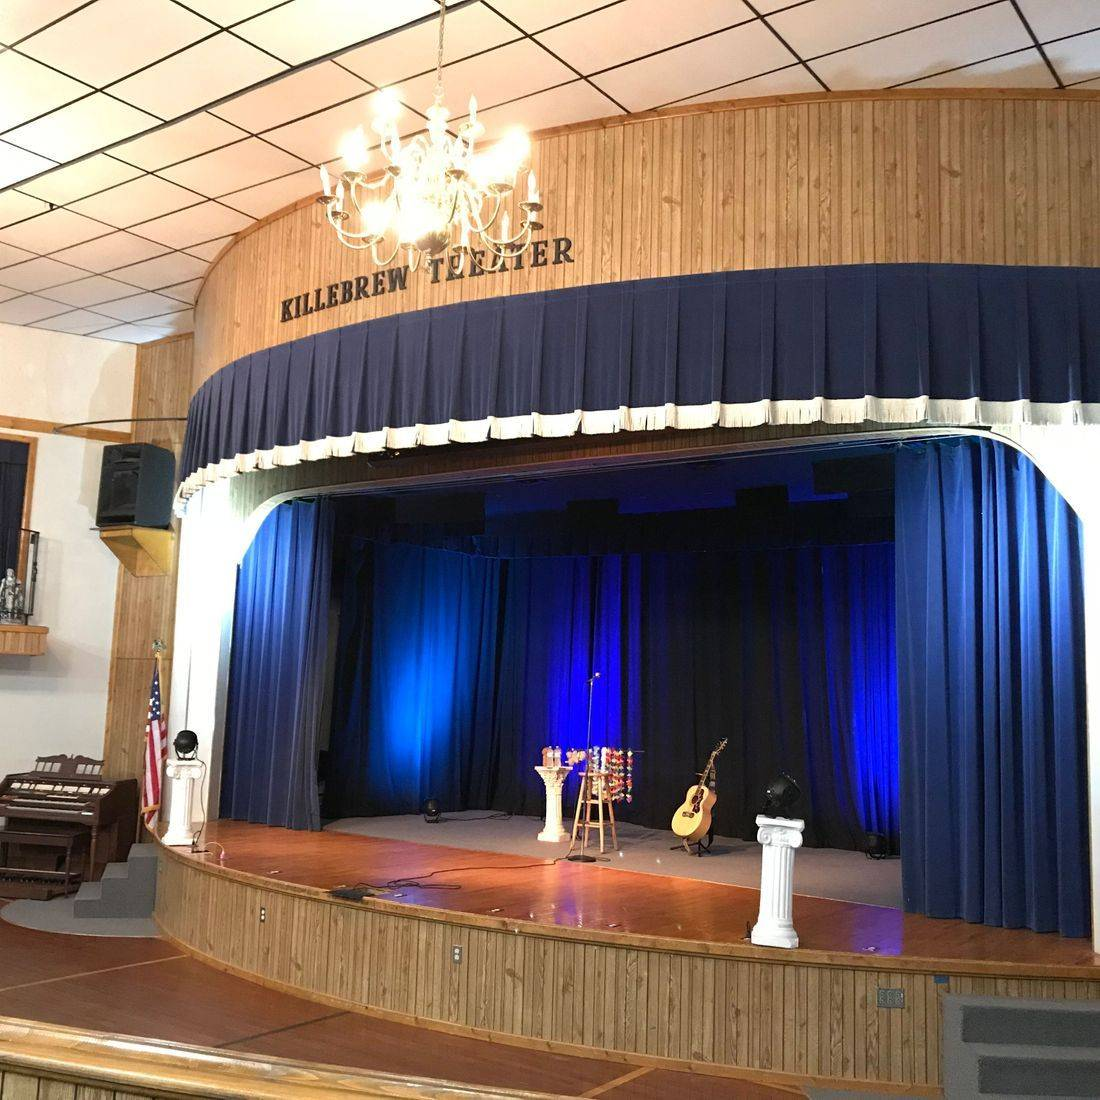 Killebrew Theater in Leslie